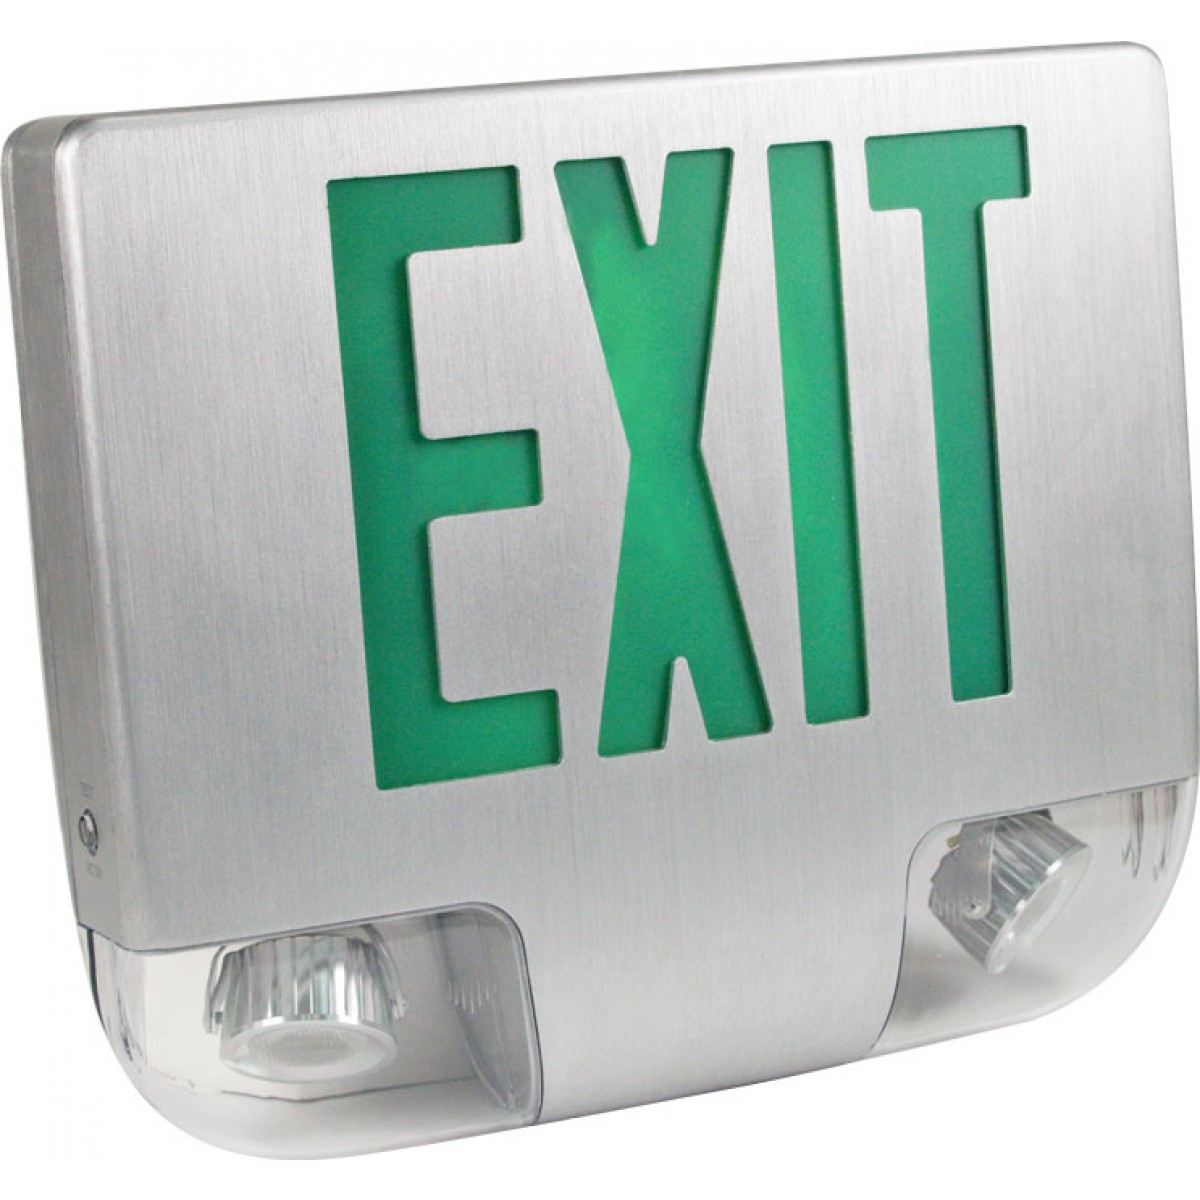 Eesla Led Exit Sign Amp Emergency Light Combo Exit